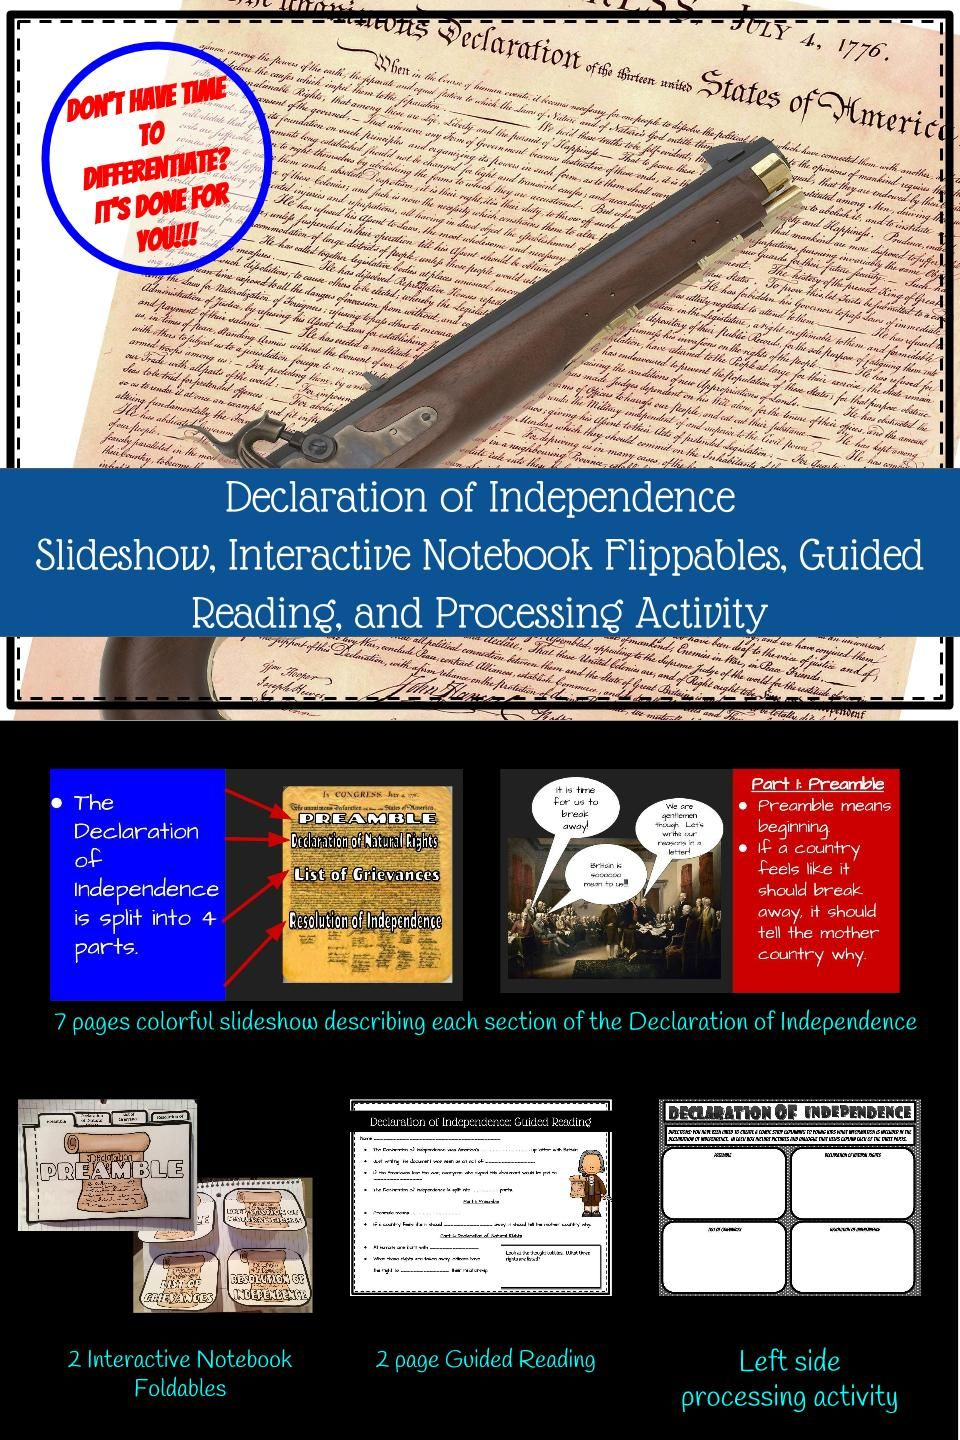 Declaration Of Independence Interactive Notebook Declaration Of Independence Interactive Notebooks Social Studies Elementary Reading like historian declaration of